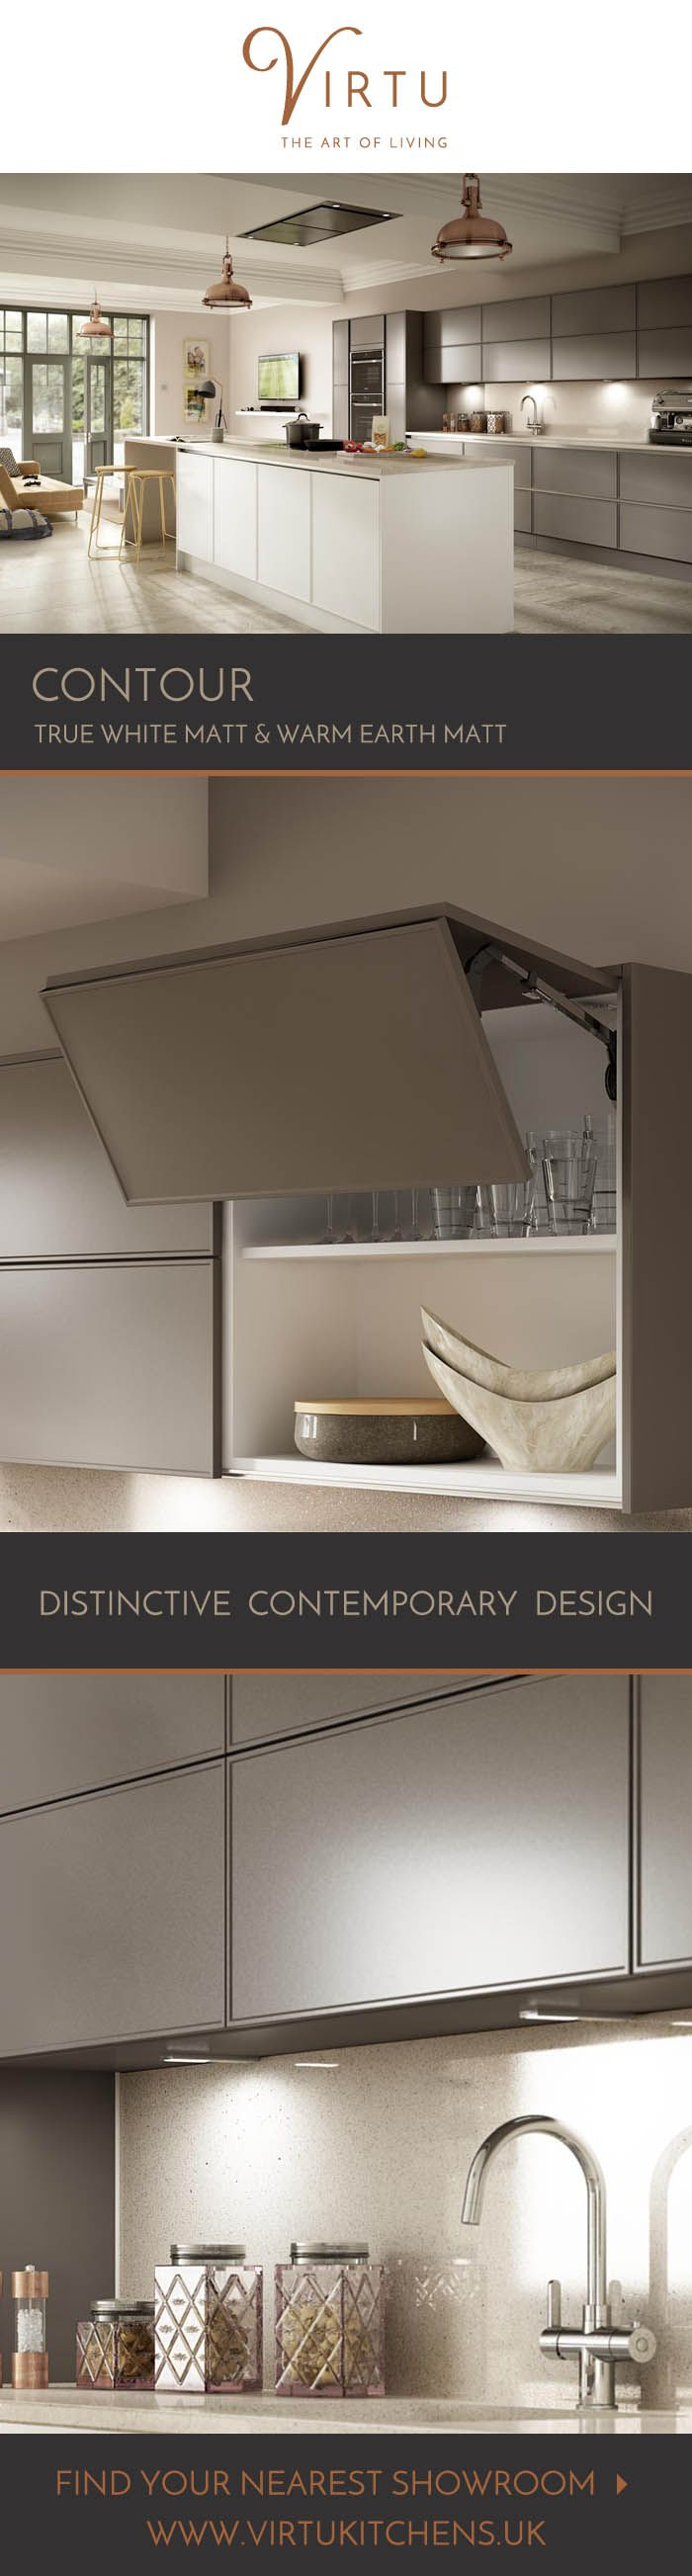 Our Contour Kitchen Has A Stylish Slab Door, With A Creative Framed Edge  Twist. Teamed With The Nouveau Handleless Cabinet With Your Choice Of Metal  Finish.